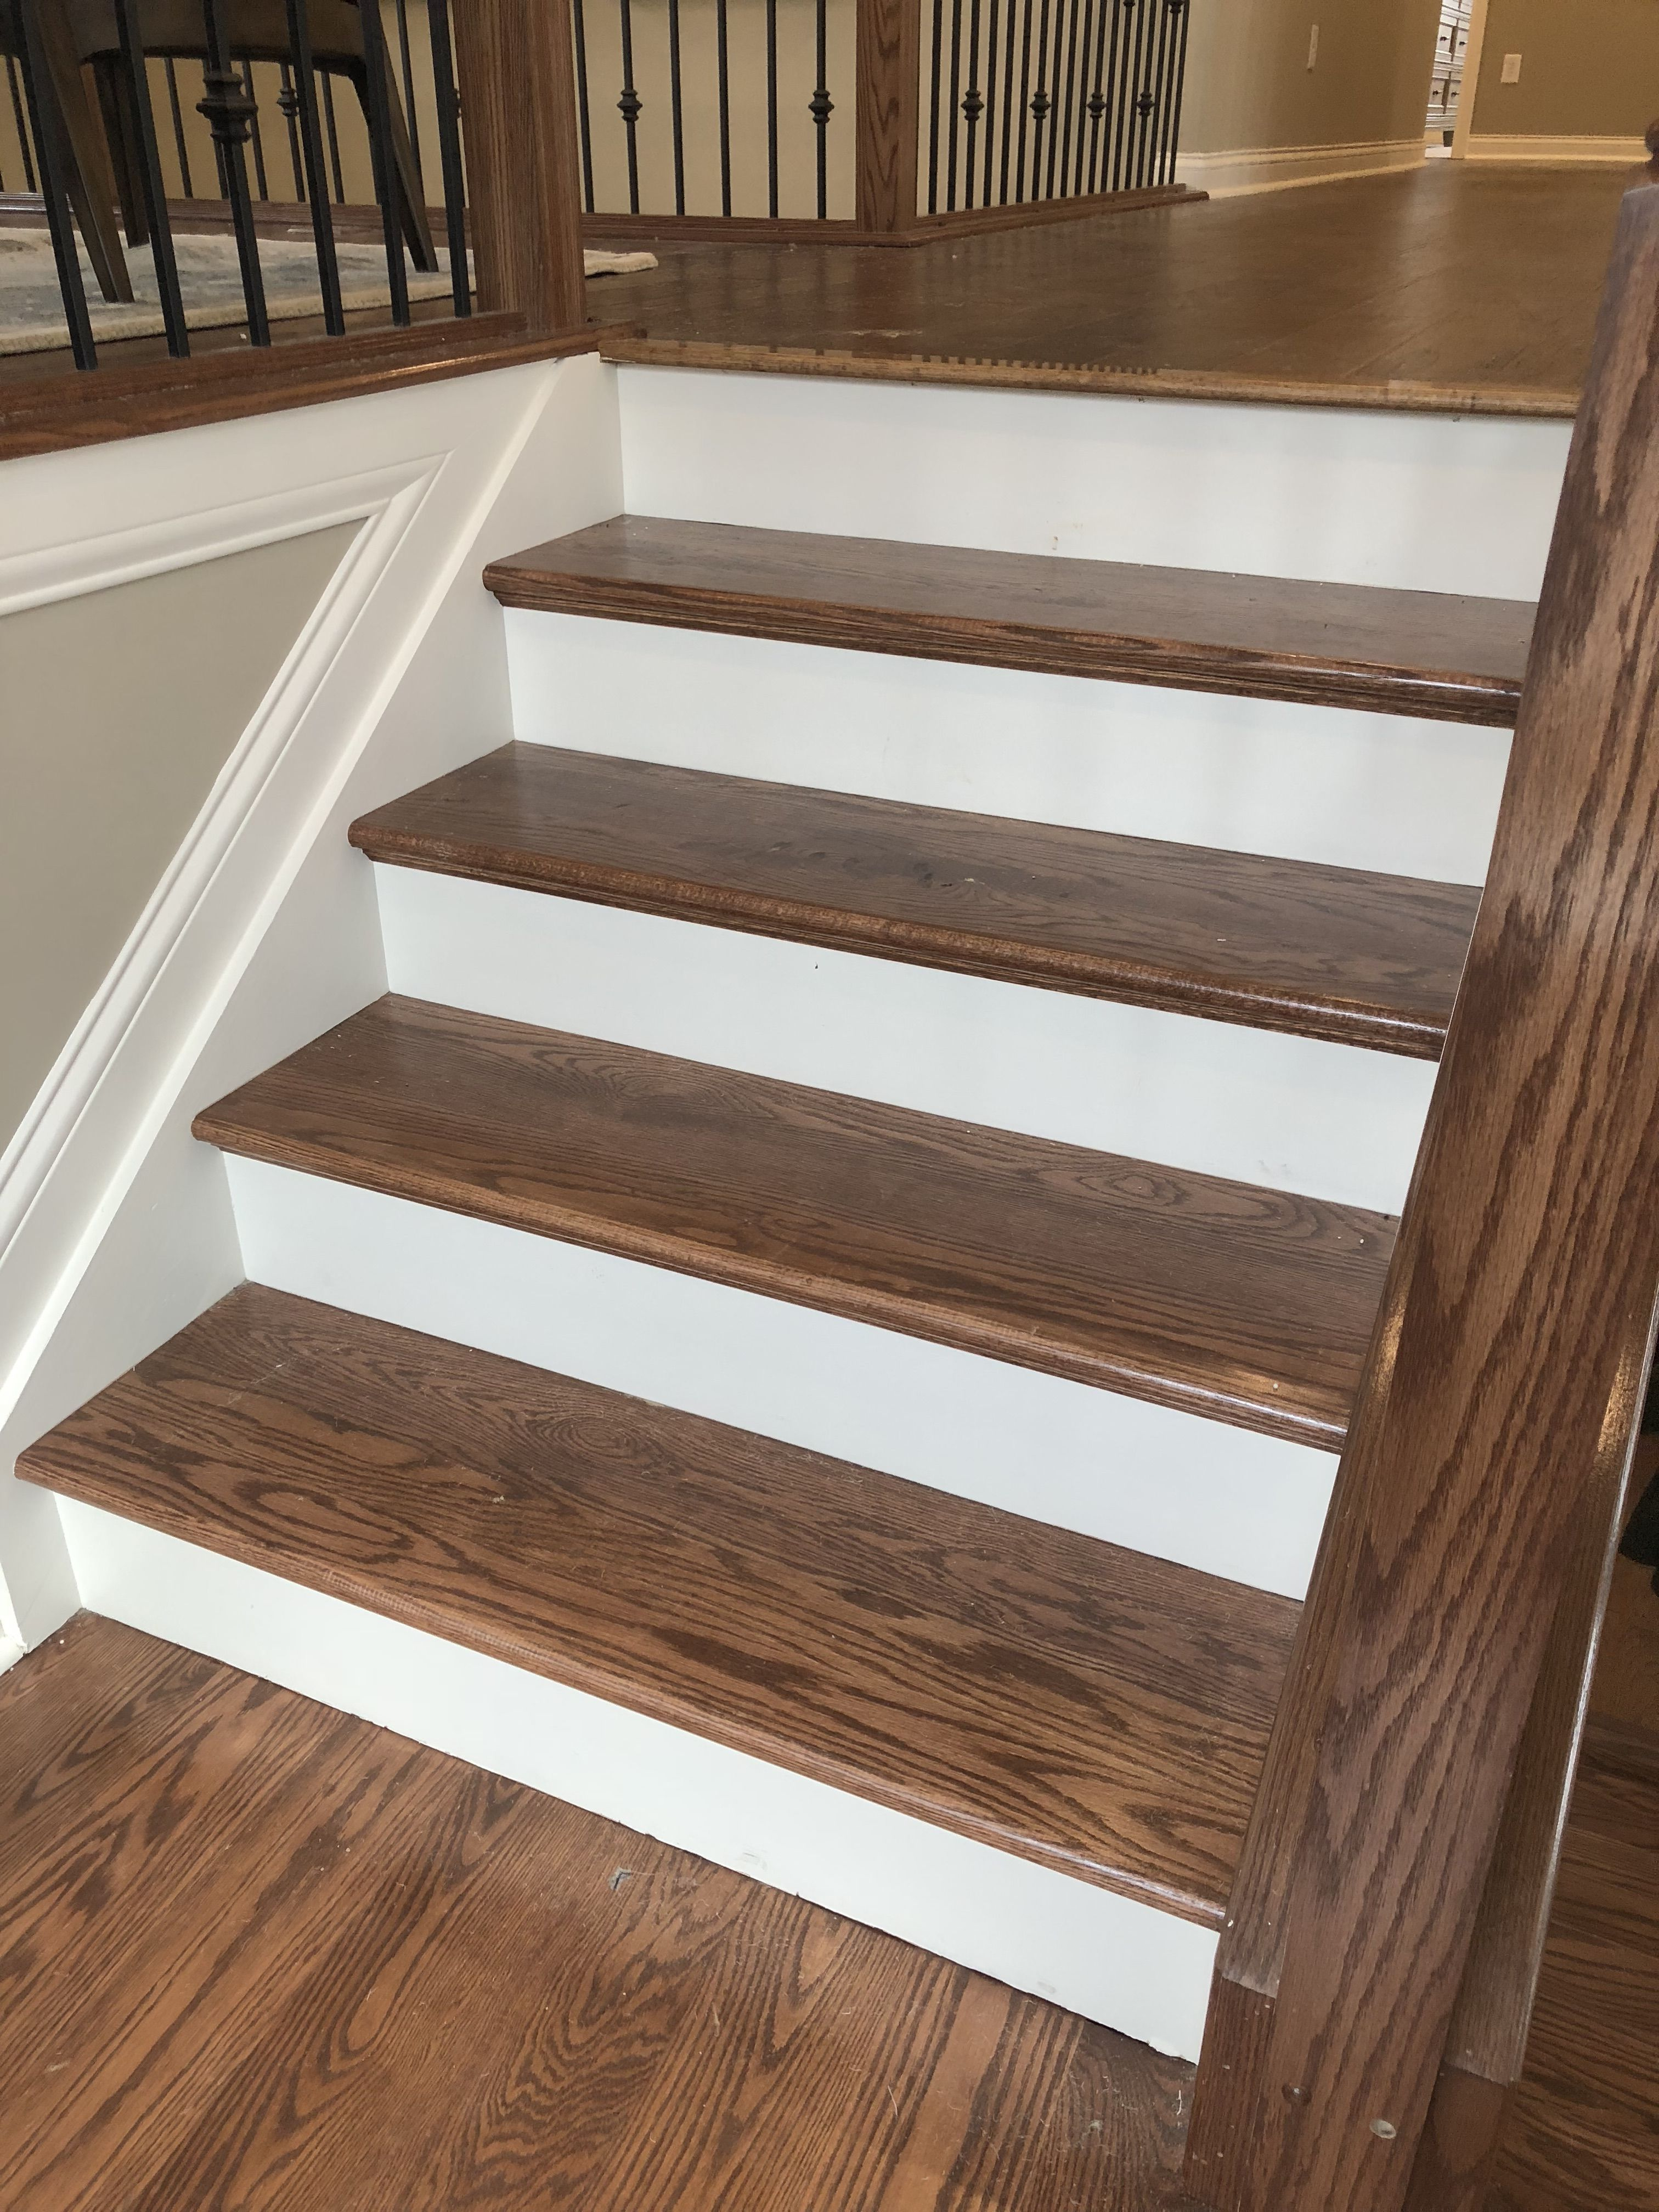 Stained Oak Treads With Painted Risers Warm Chestnut Stain   Staining Stair Treads And Painted Risers   Open Stair Basement   4 Thick   Walnut   Design   Commercial Business